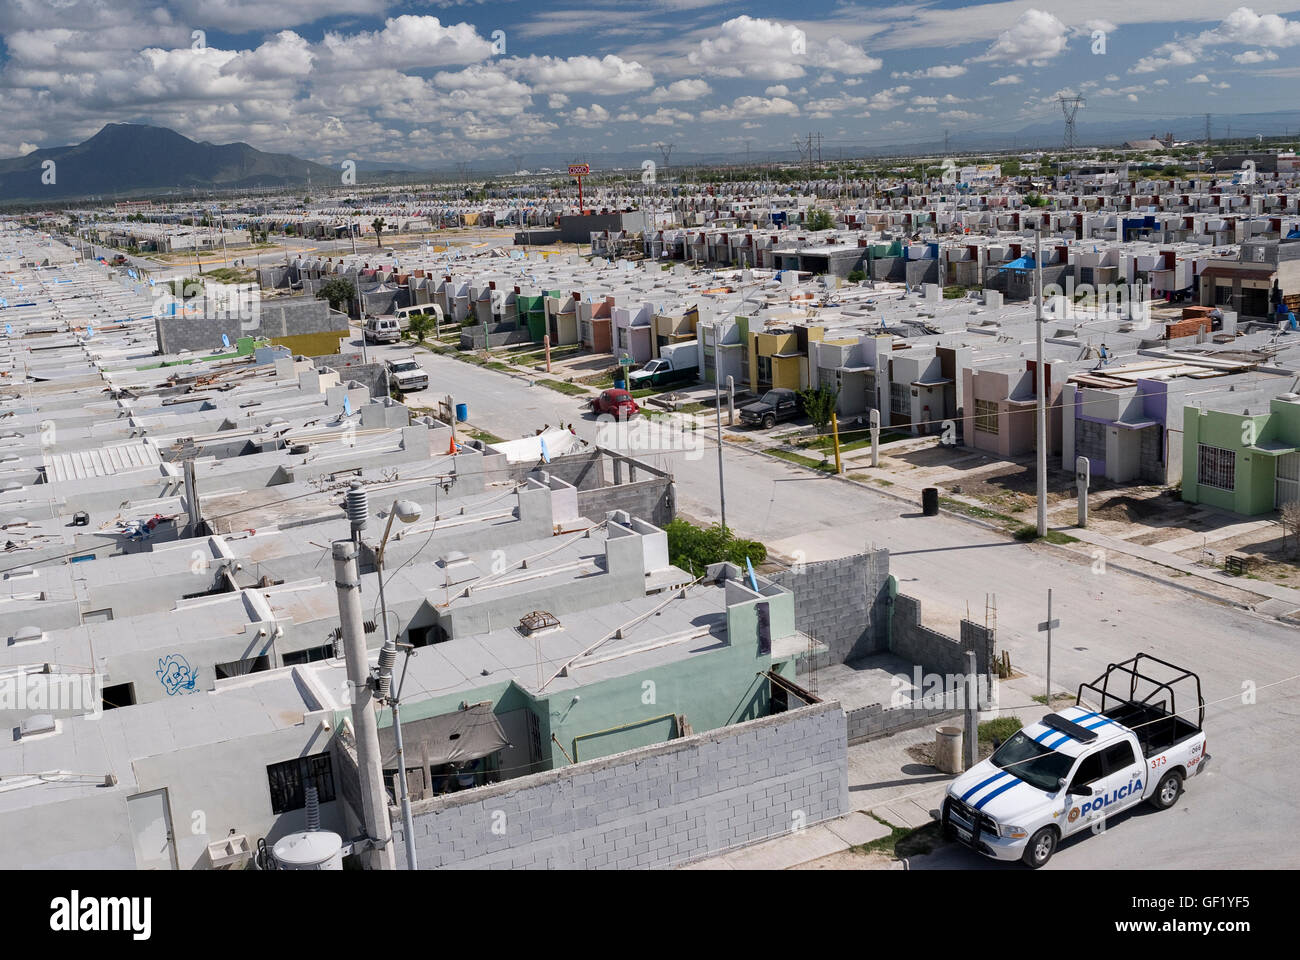 Police patrol low-cost government housing neighborhood in Colonia San Miguel in Escobedo, Nuevo Leon, Mexico. - Stock Image